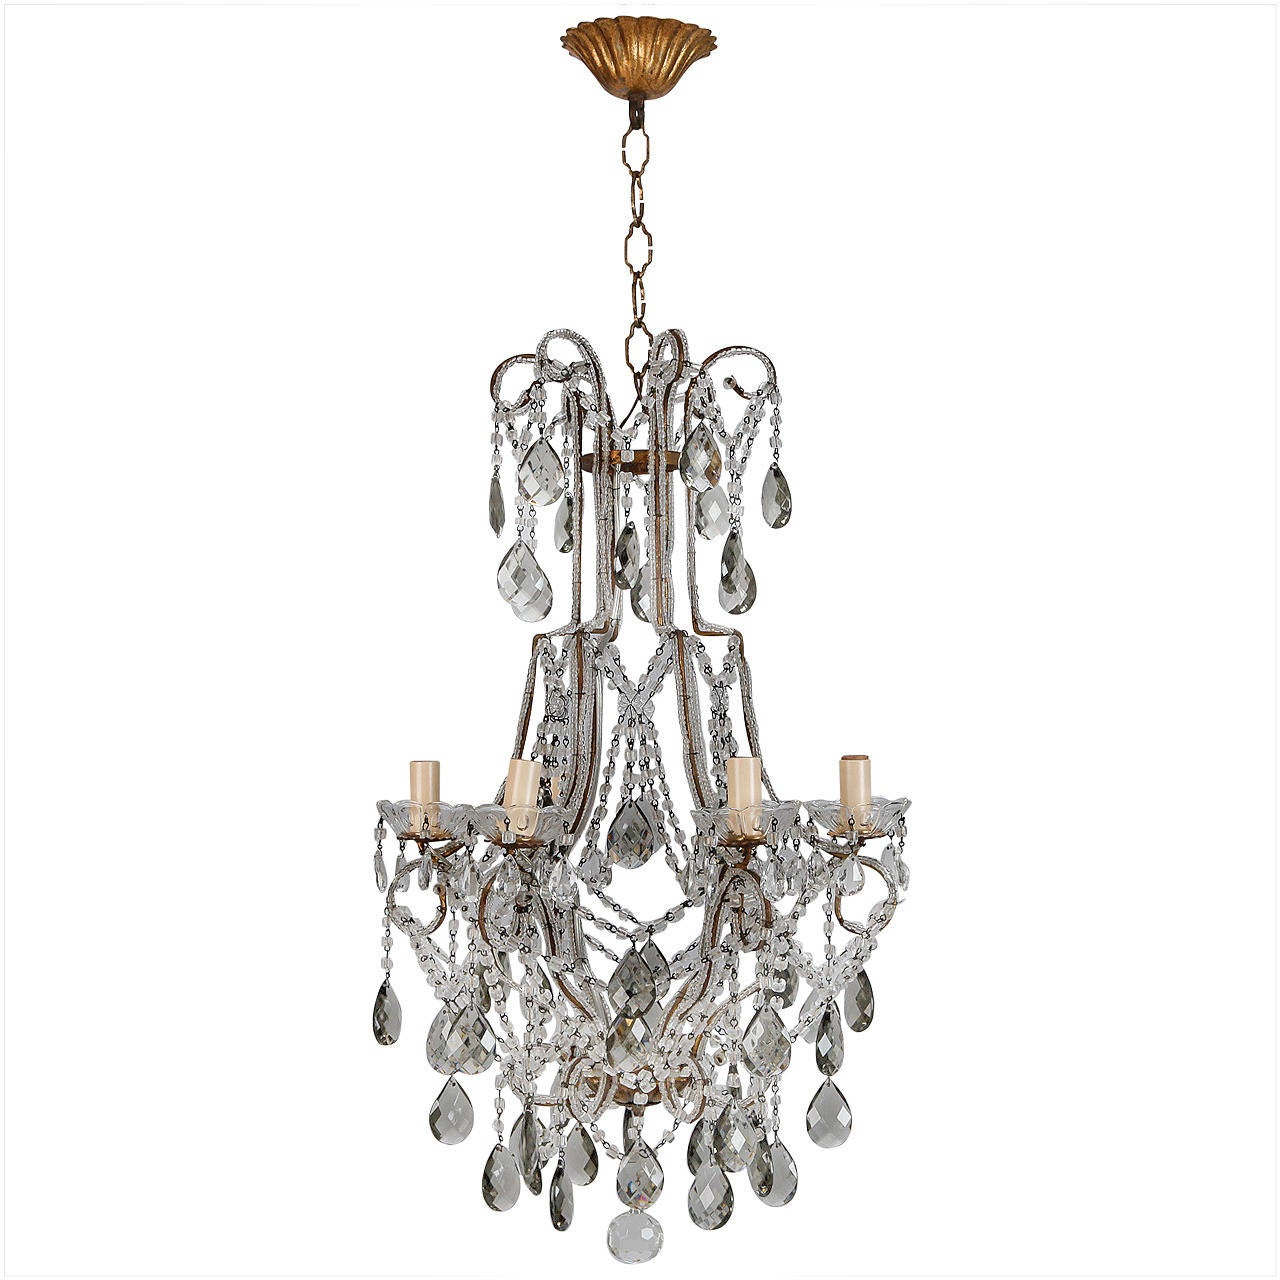 French Six Light All Crystal Beaded Chandelier With Smoke Color Drops For Sale At 1stdibs